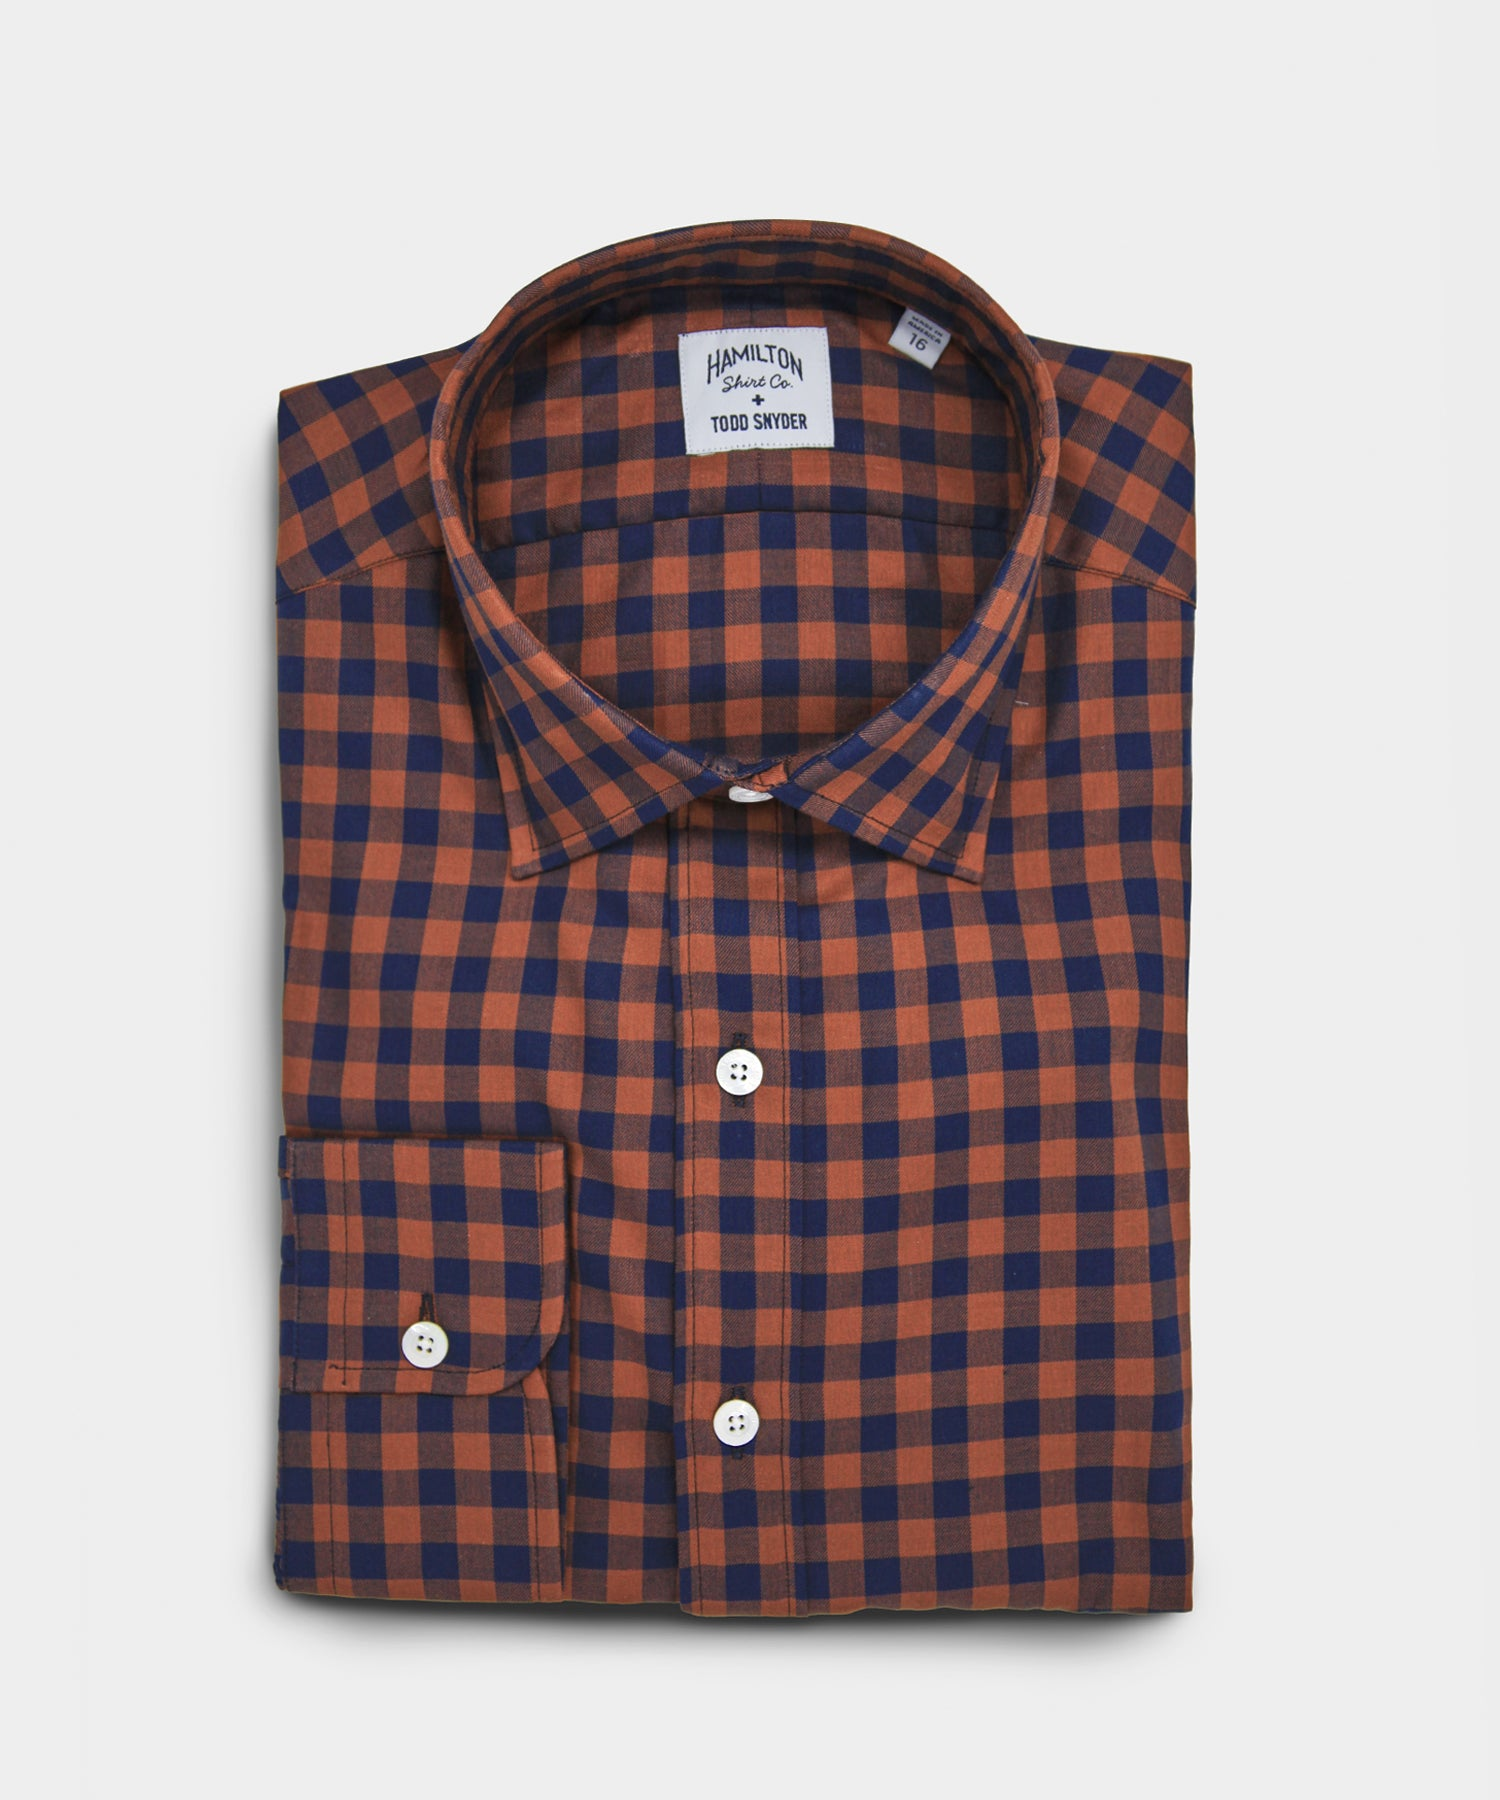 Made in the USA Hamilton + Todd Snyder Chestnut Navy Gingham Dres Shirt